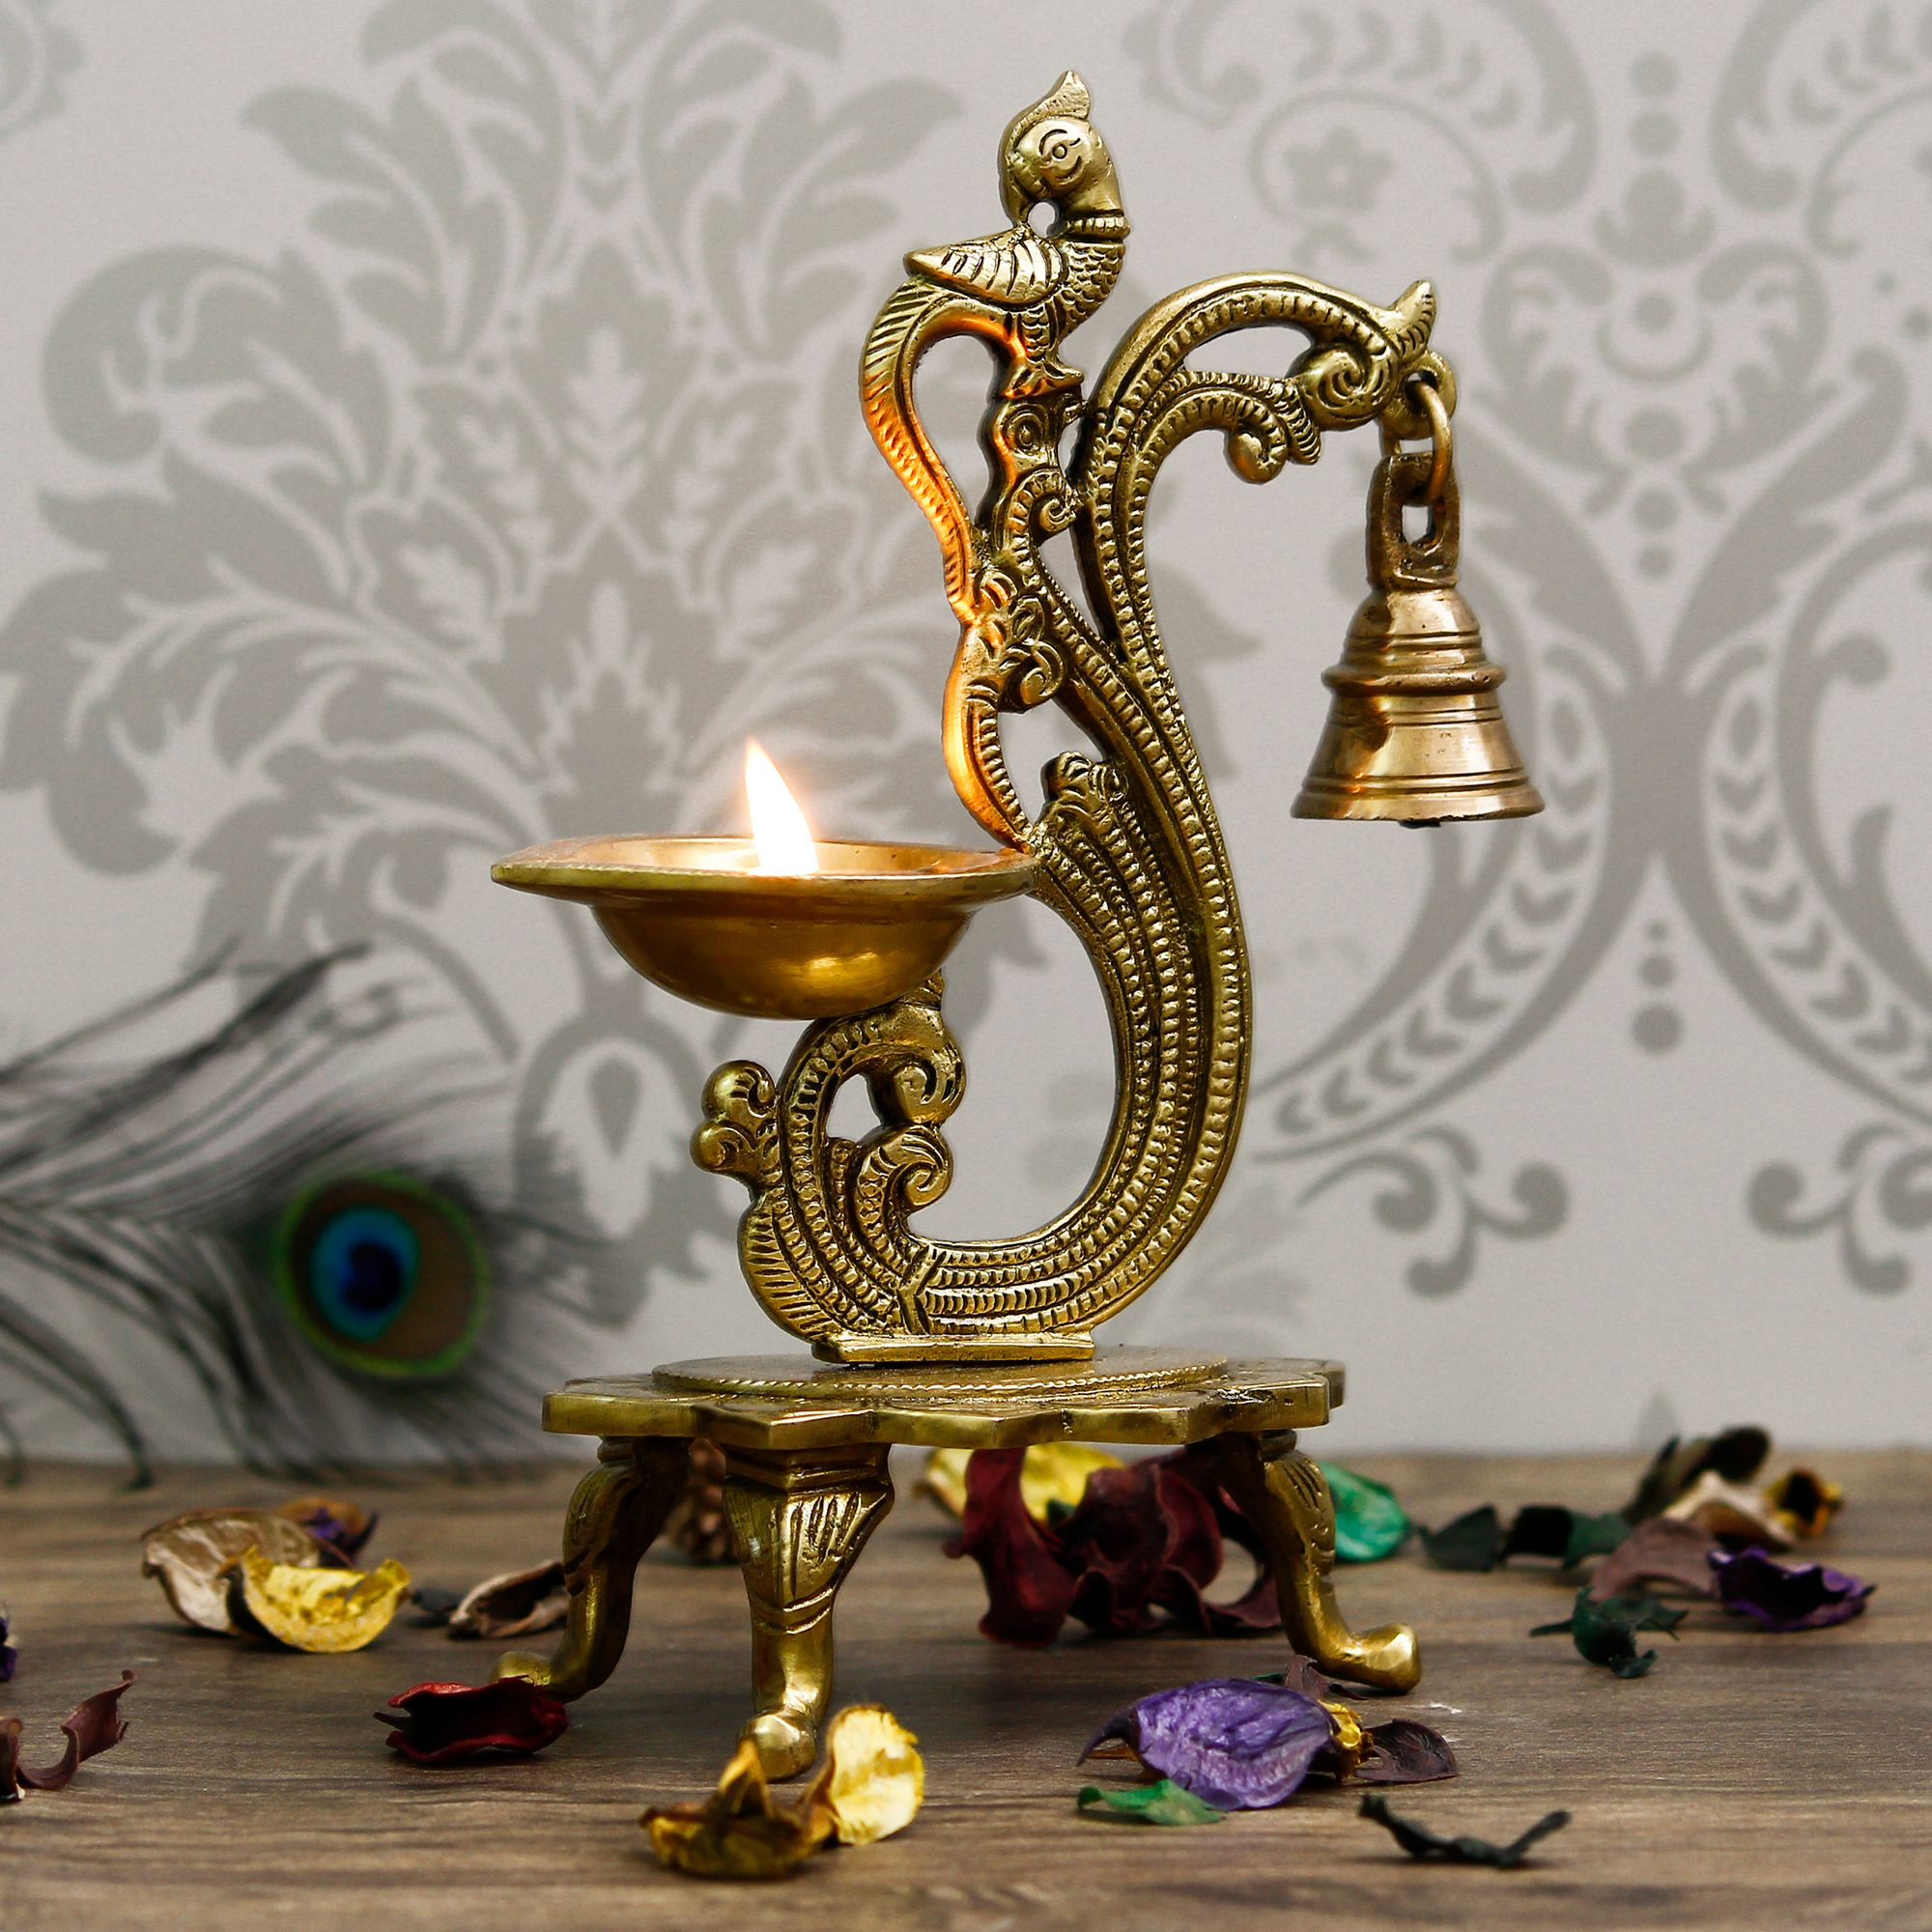 Antique Finish Decorative Handcrafted Brass Parrot Showpiece Diya with Bells and Stand Indian Home Decor